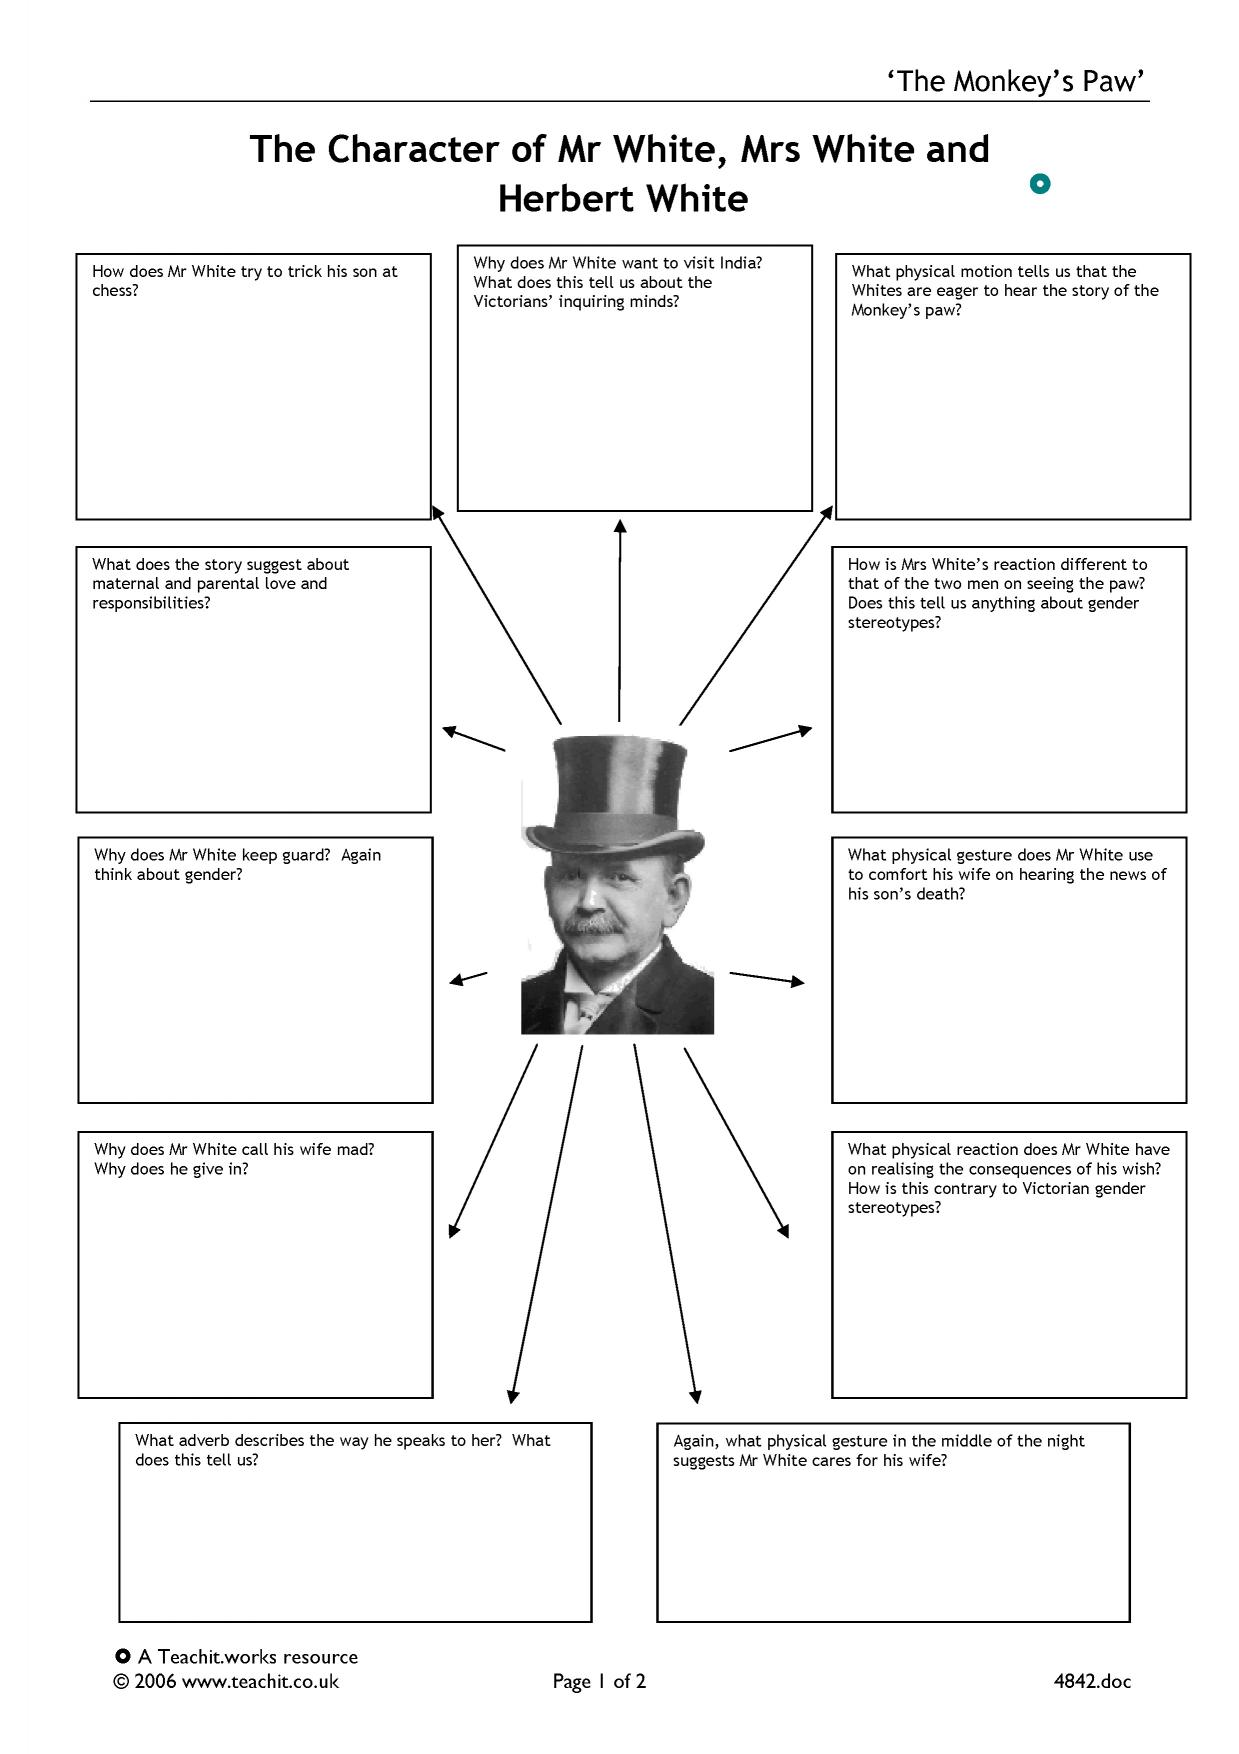 the monkeys paw 2 essay From a general summary to chapter summaries to explanations of famous quotes, the sparknotes the monkey's paw study guide has everything you need to ace quizzes, tests, and essays.